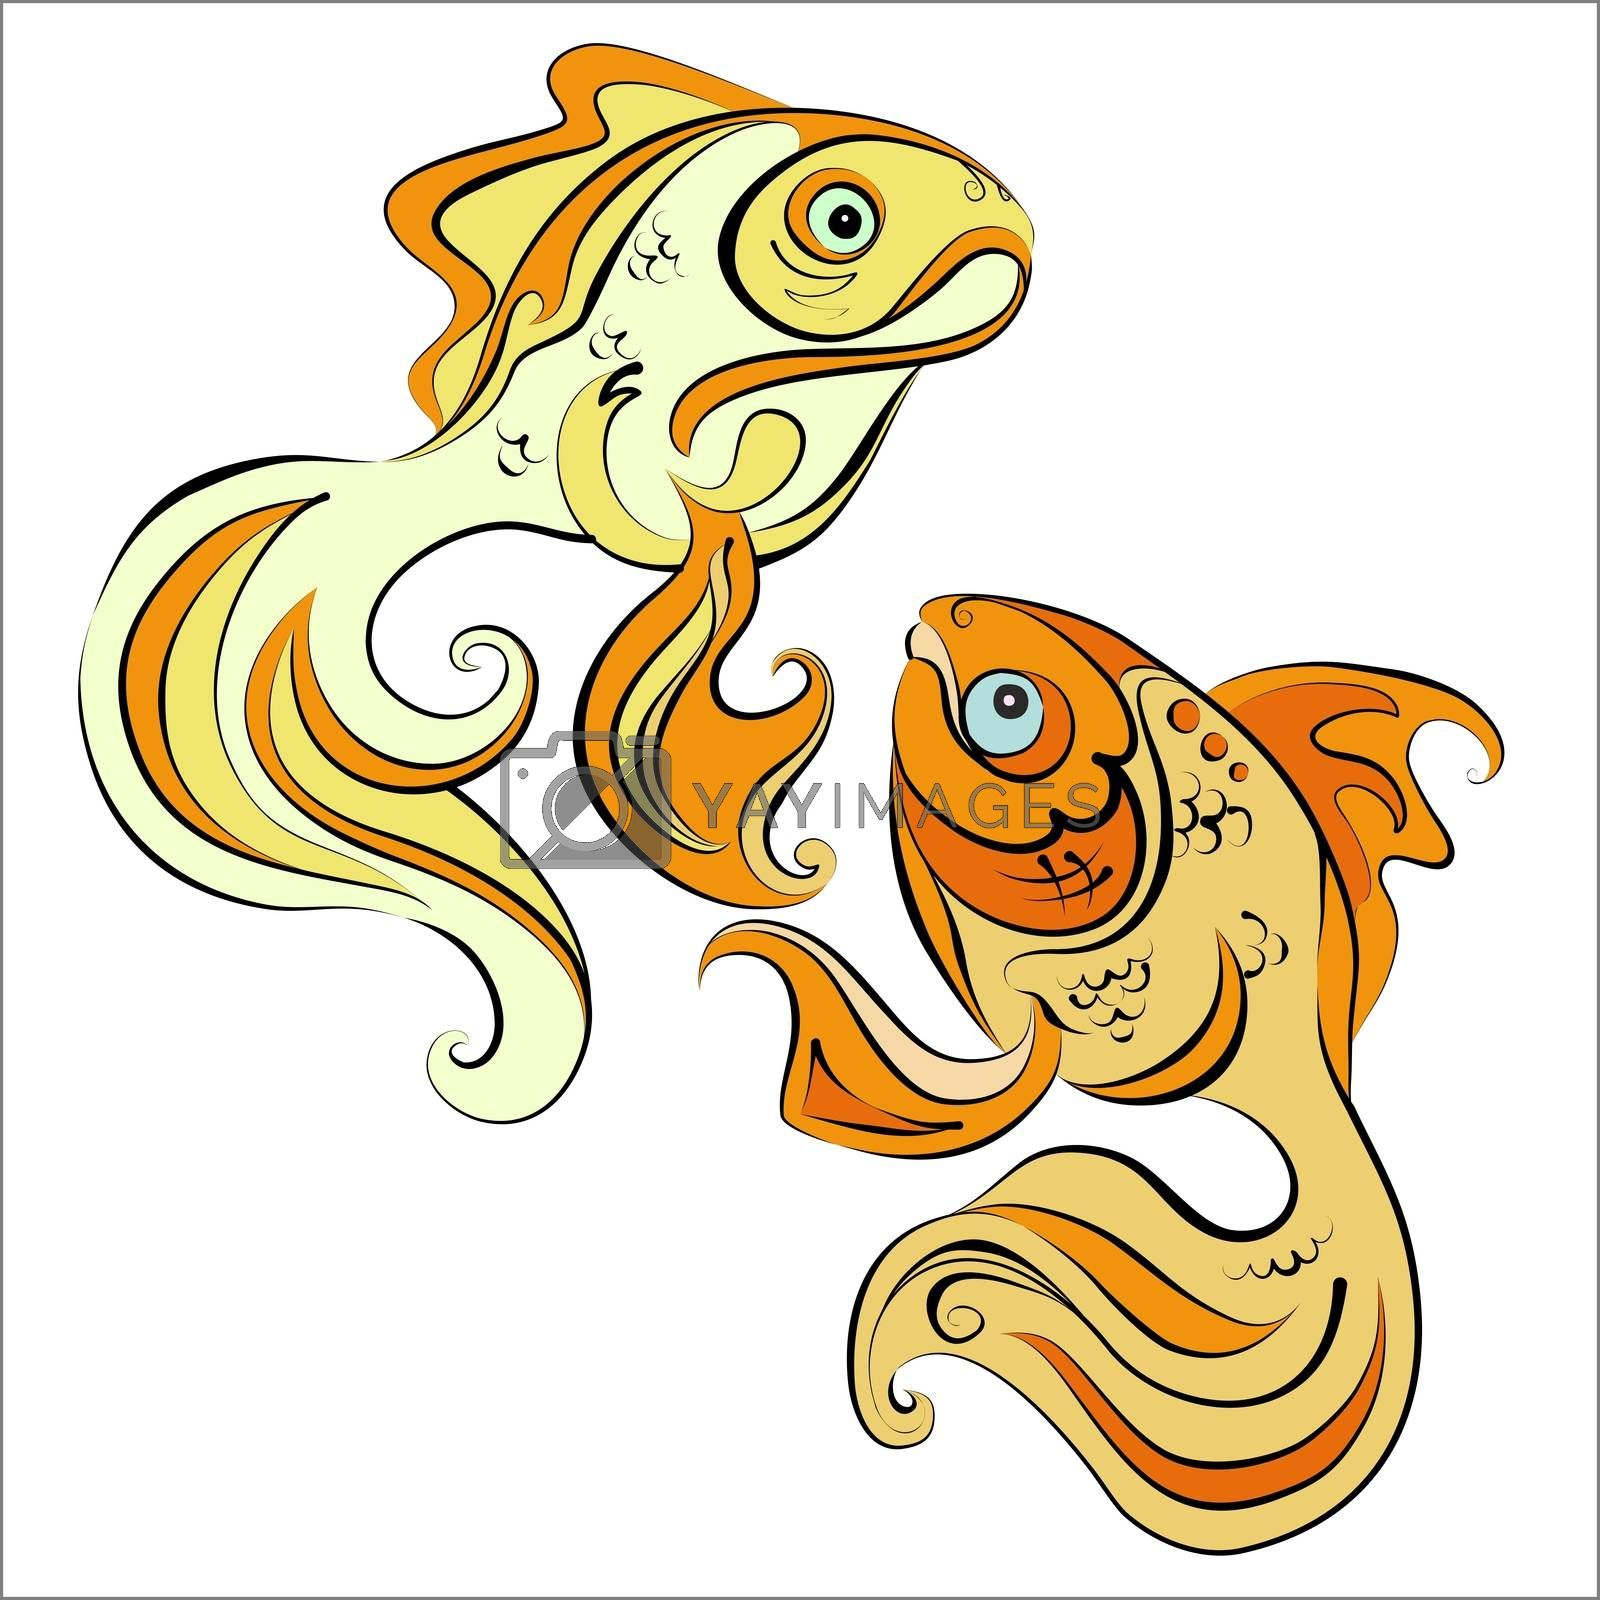 Illustration of two stylized gold fish on white background